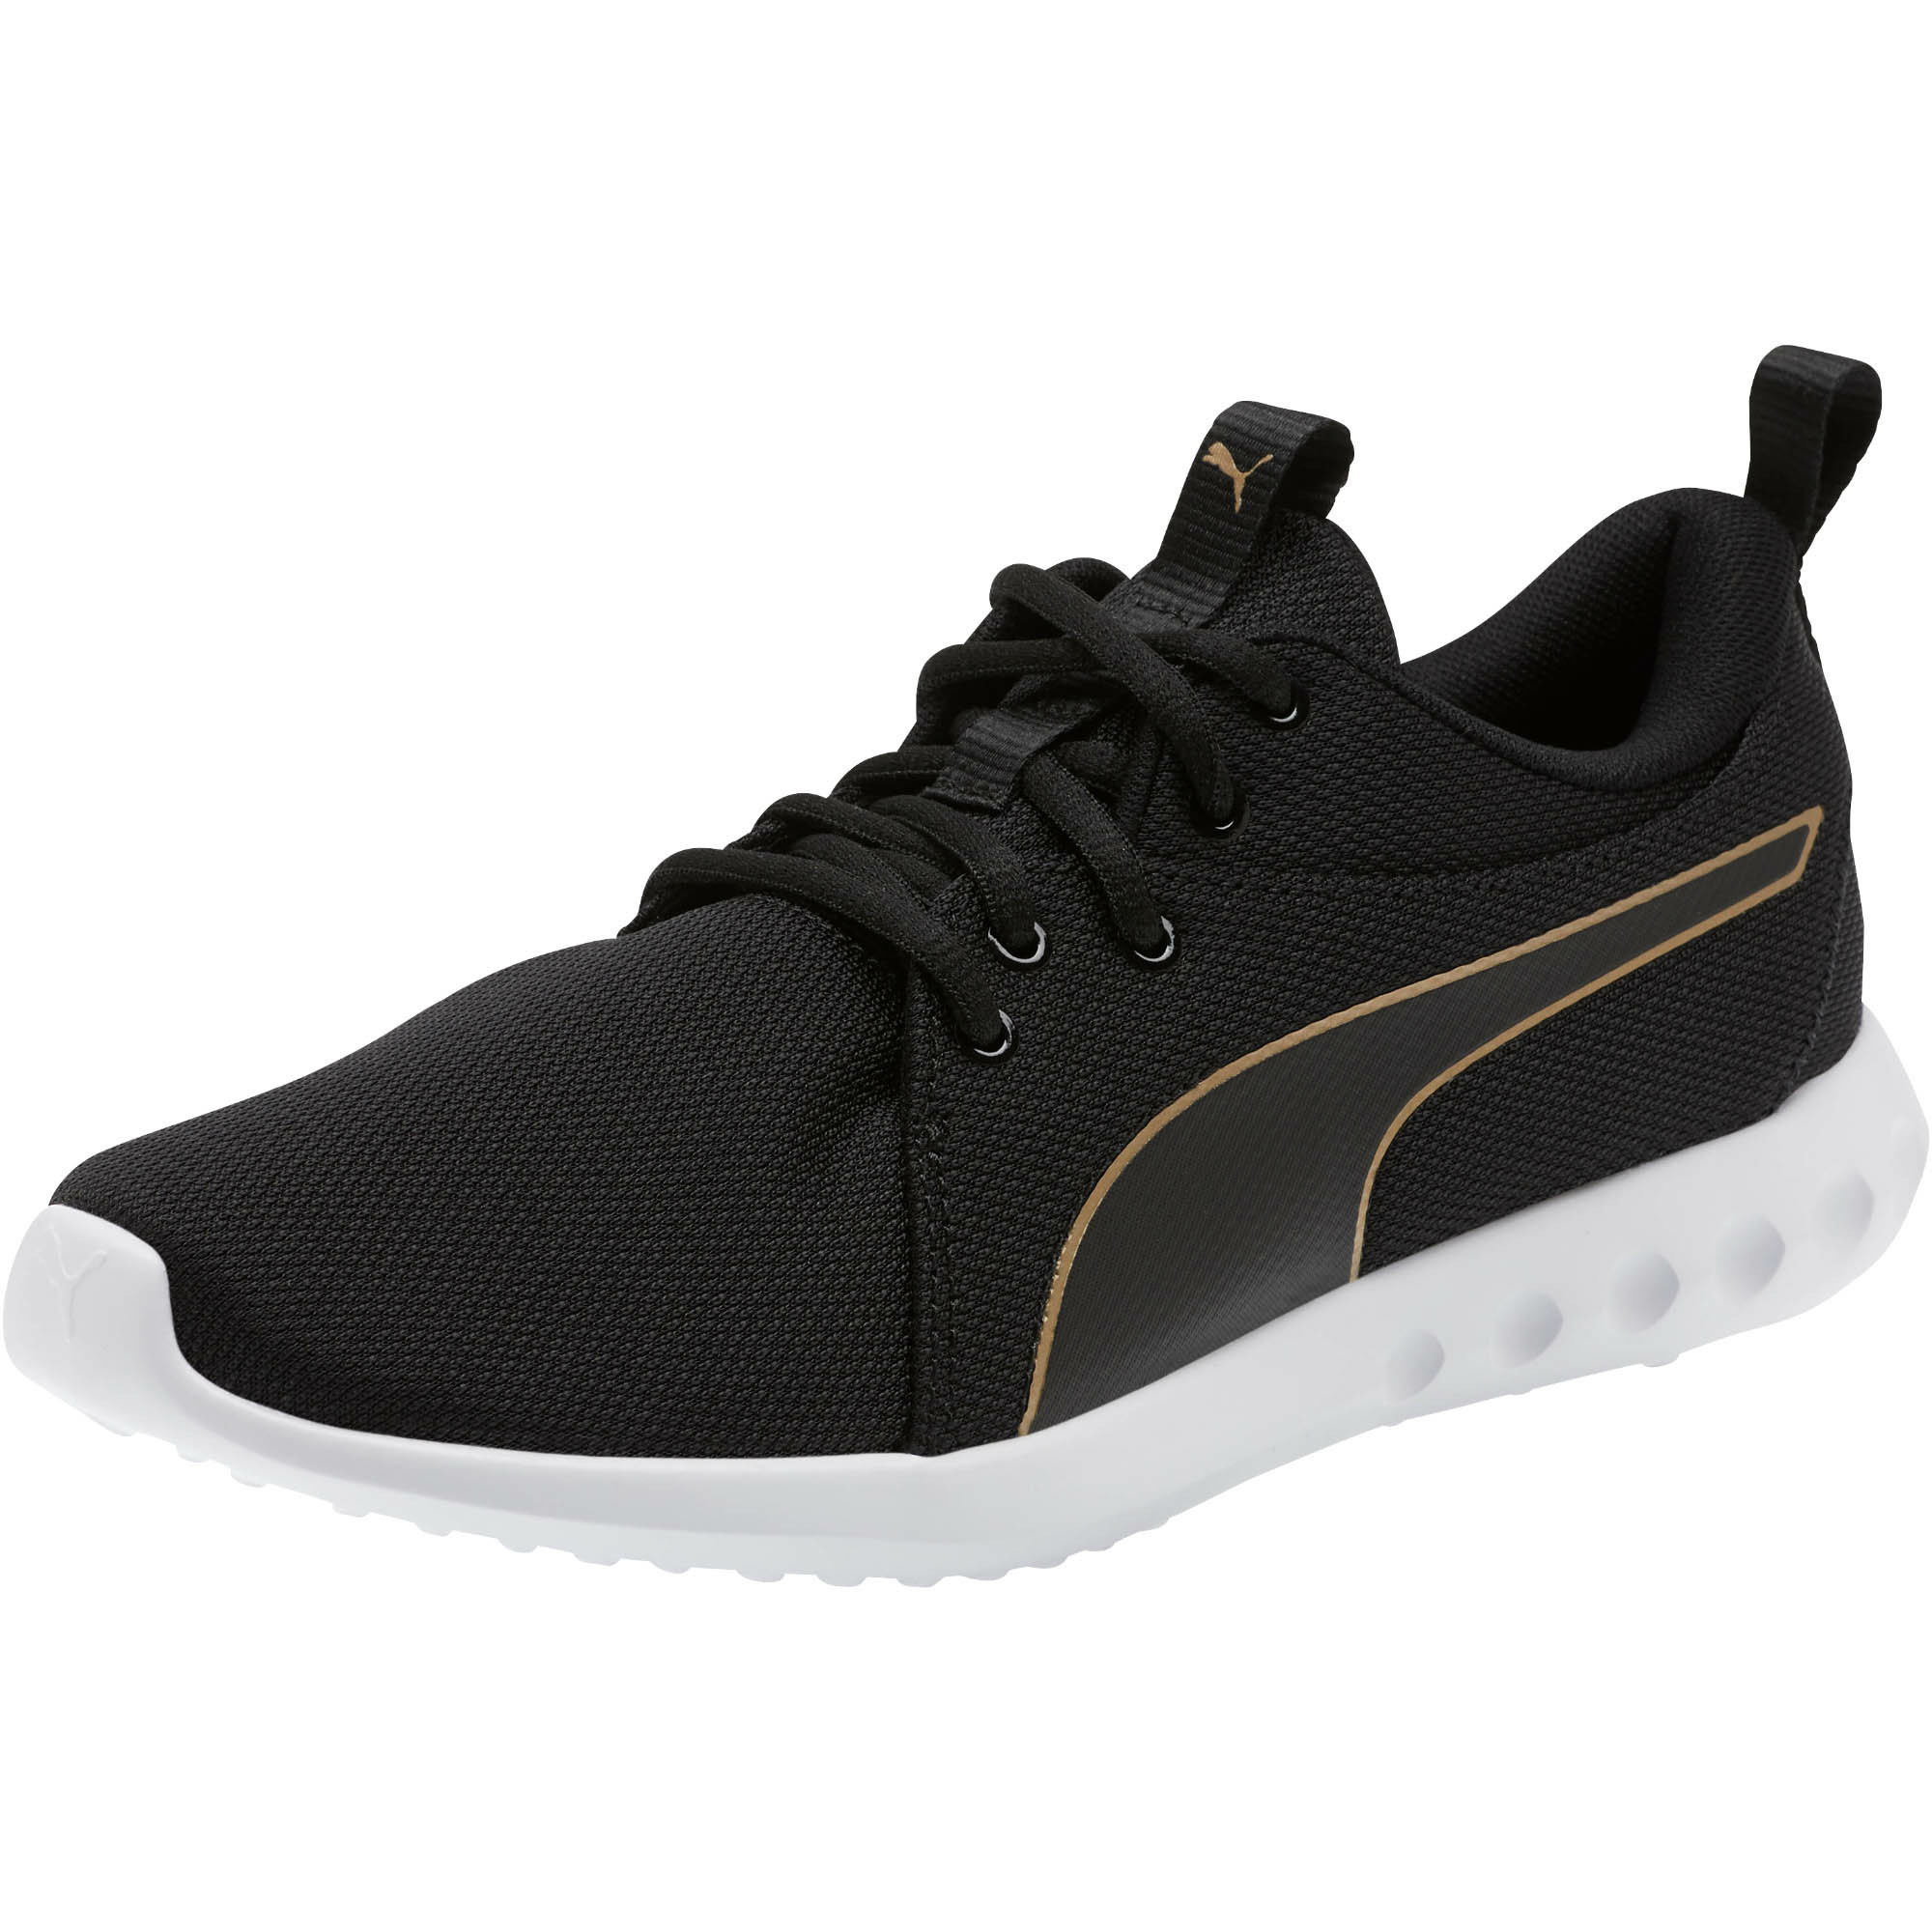 PUMA-Women-039-s-Carson-2-Cosmo-Running-Shoes thumbnail 14